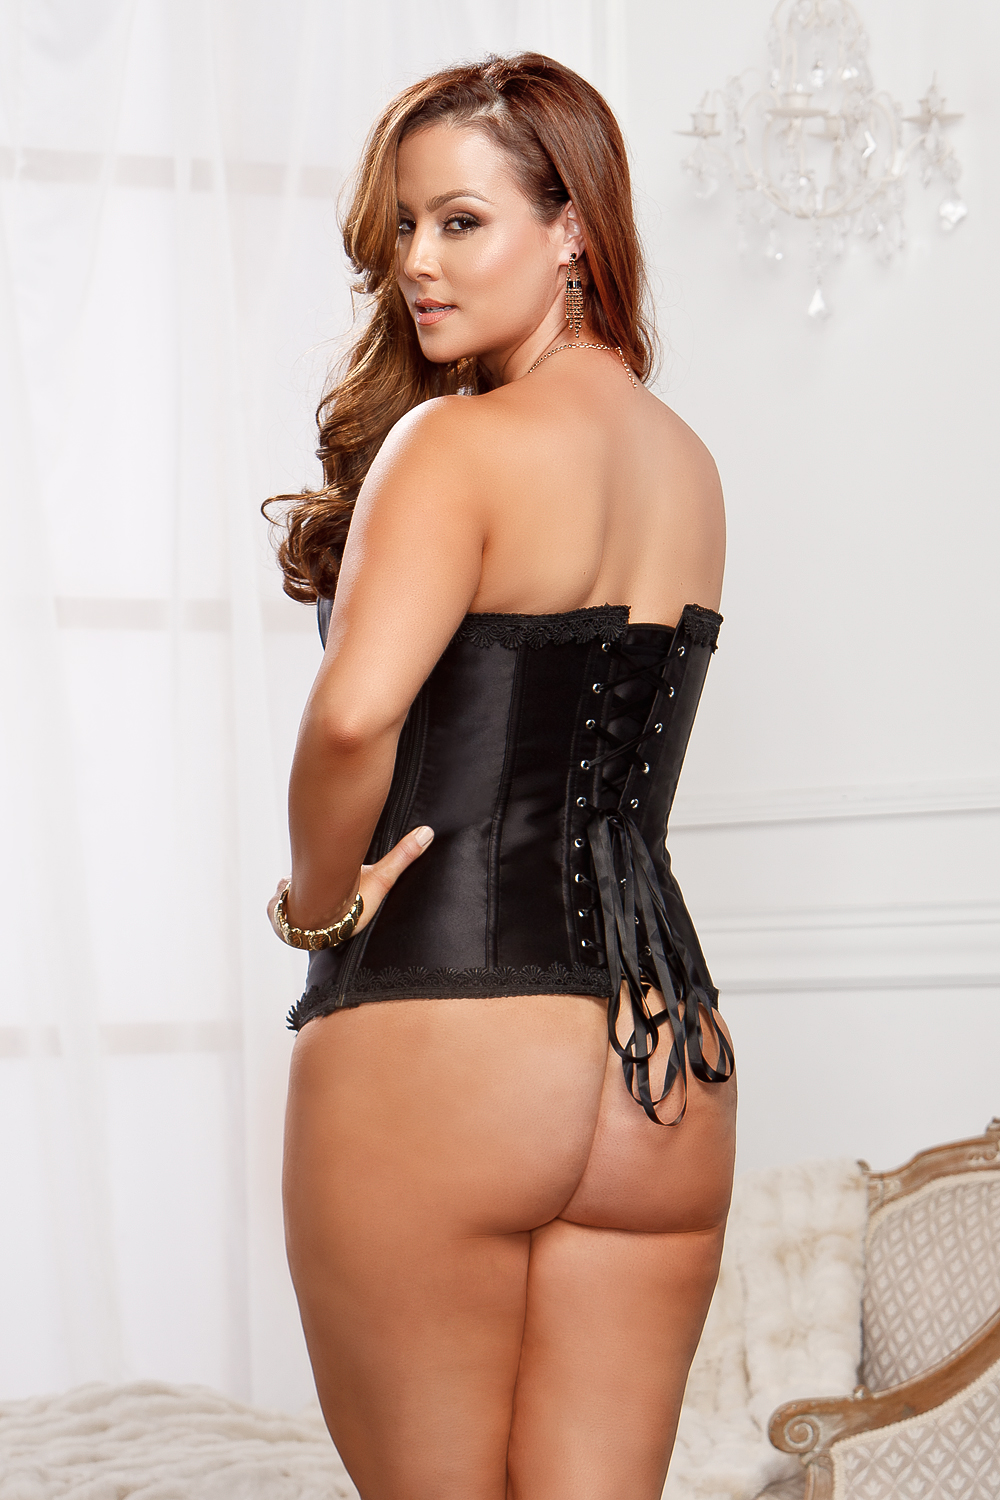 Plus Size Raven Black Corset and G-string